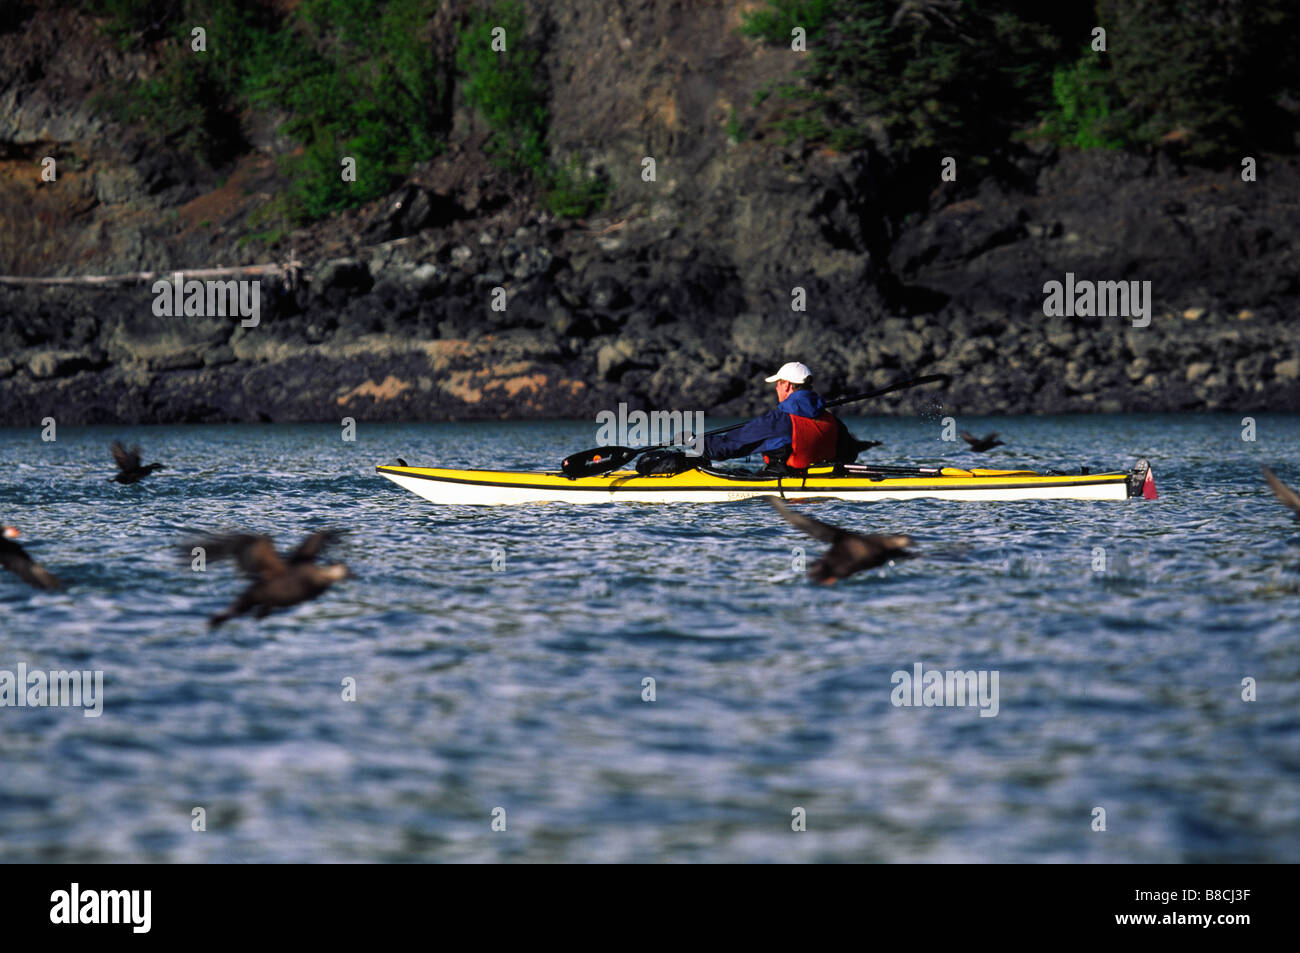 Kayaking  Seduction Point, Alaska - Stock Image